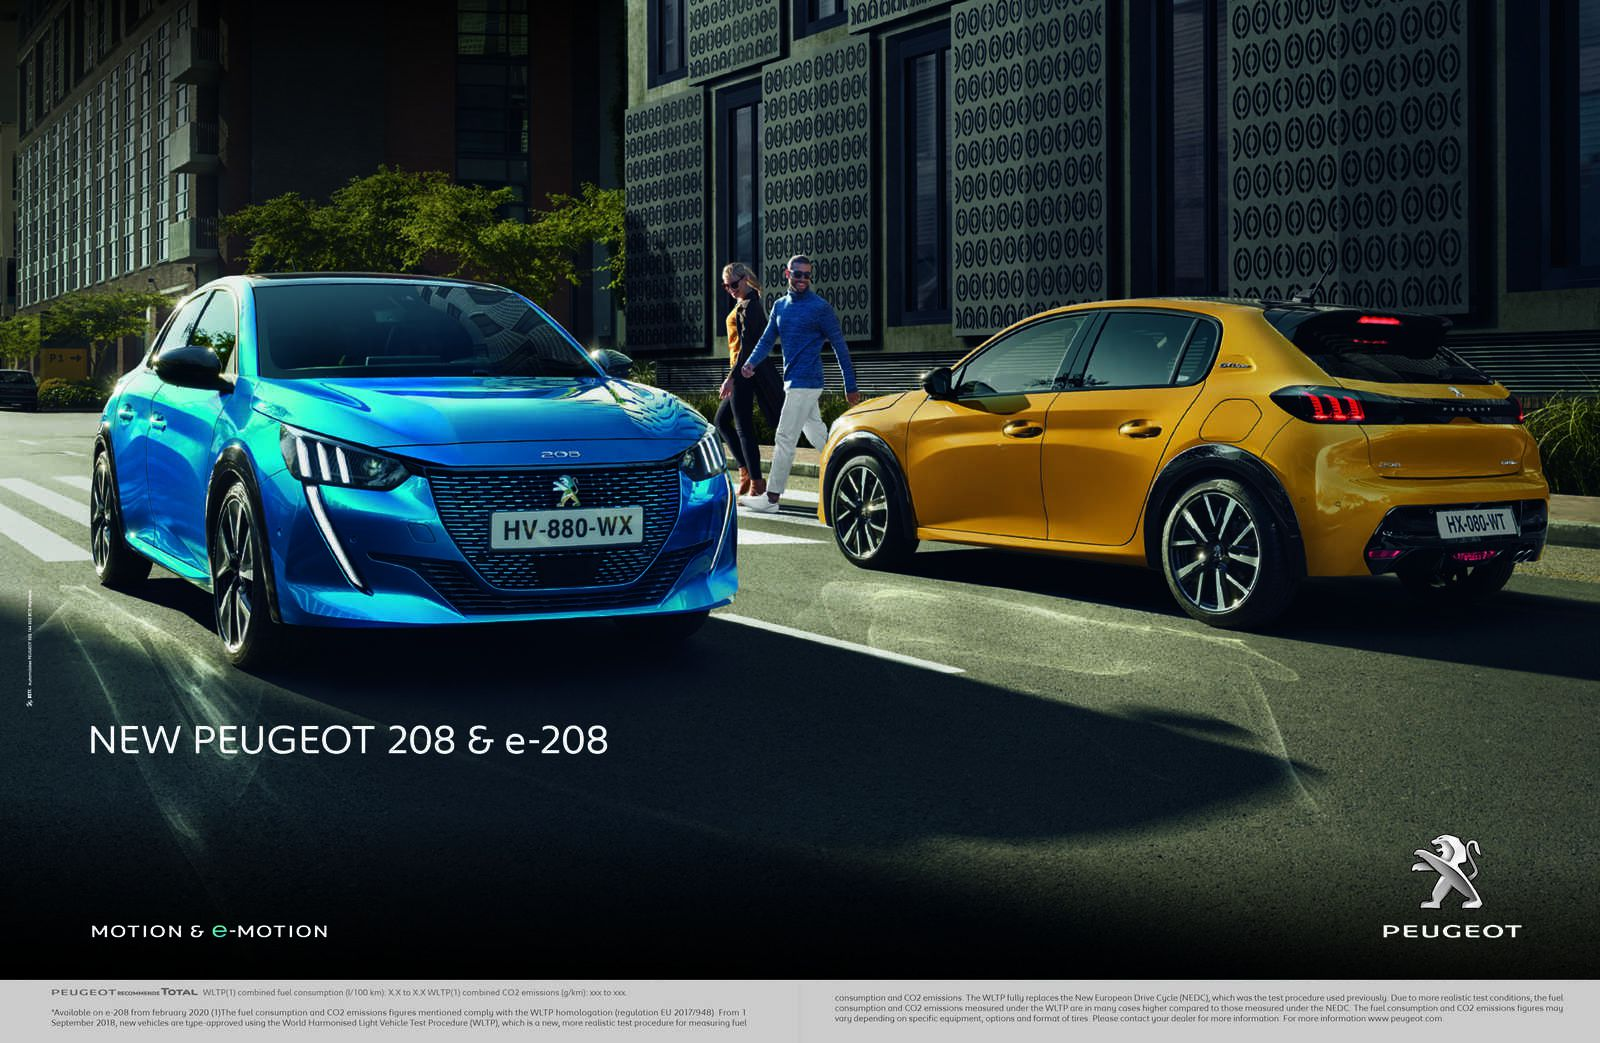 """THE NEW PEUGEOT 208 NAMED EUROPEAN """"CAR OF THE YEAR 2020"""""""